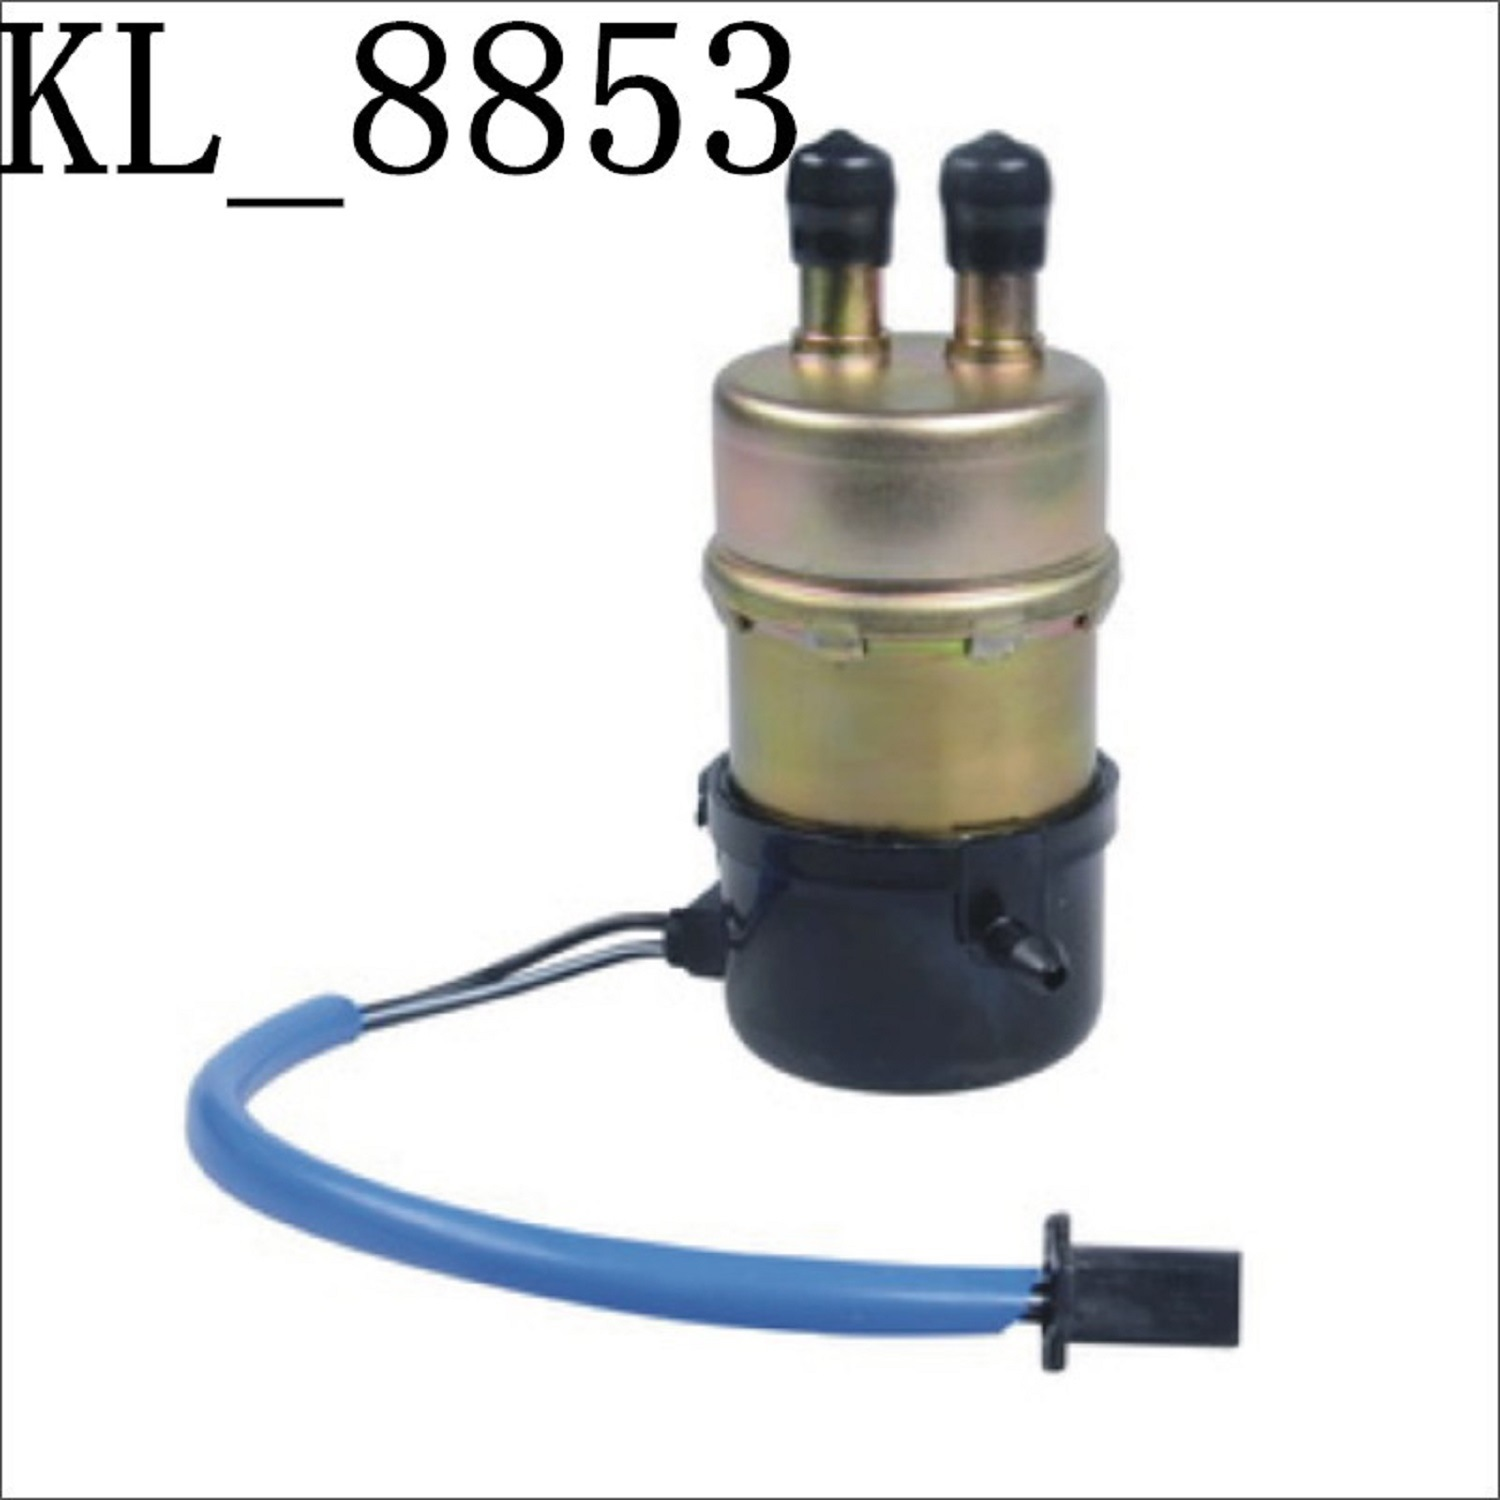 Low Pressure Electronic Fuel Pump for Motorcycle with Kl-8853